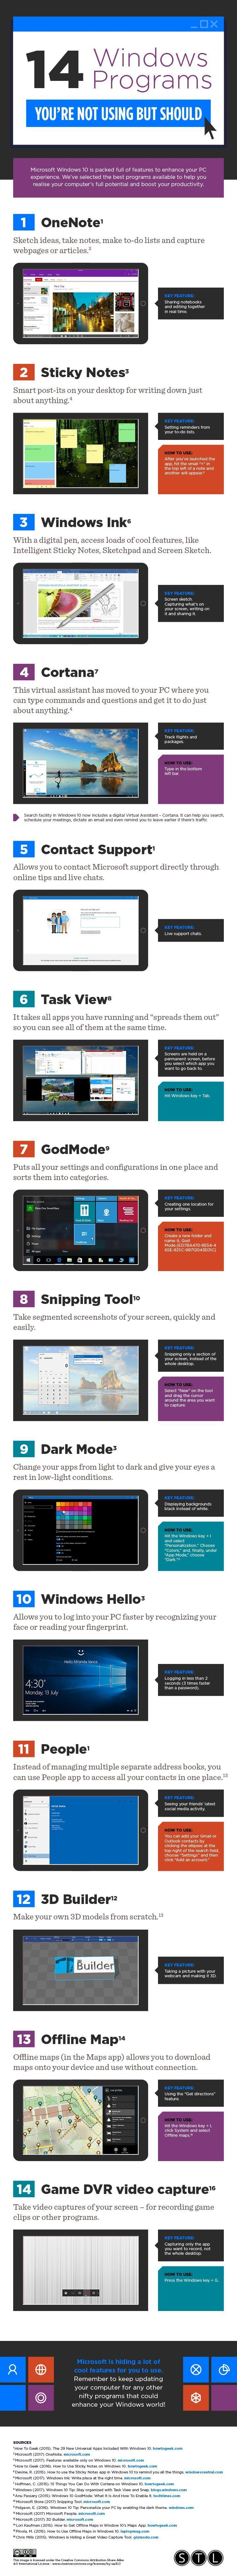 14 Windows Tools to Help You Run Your Business More Efficiently [Infographic]